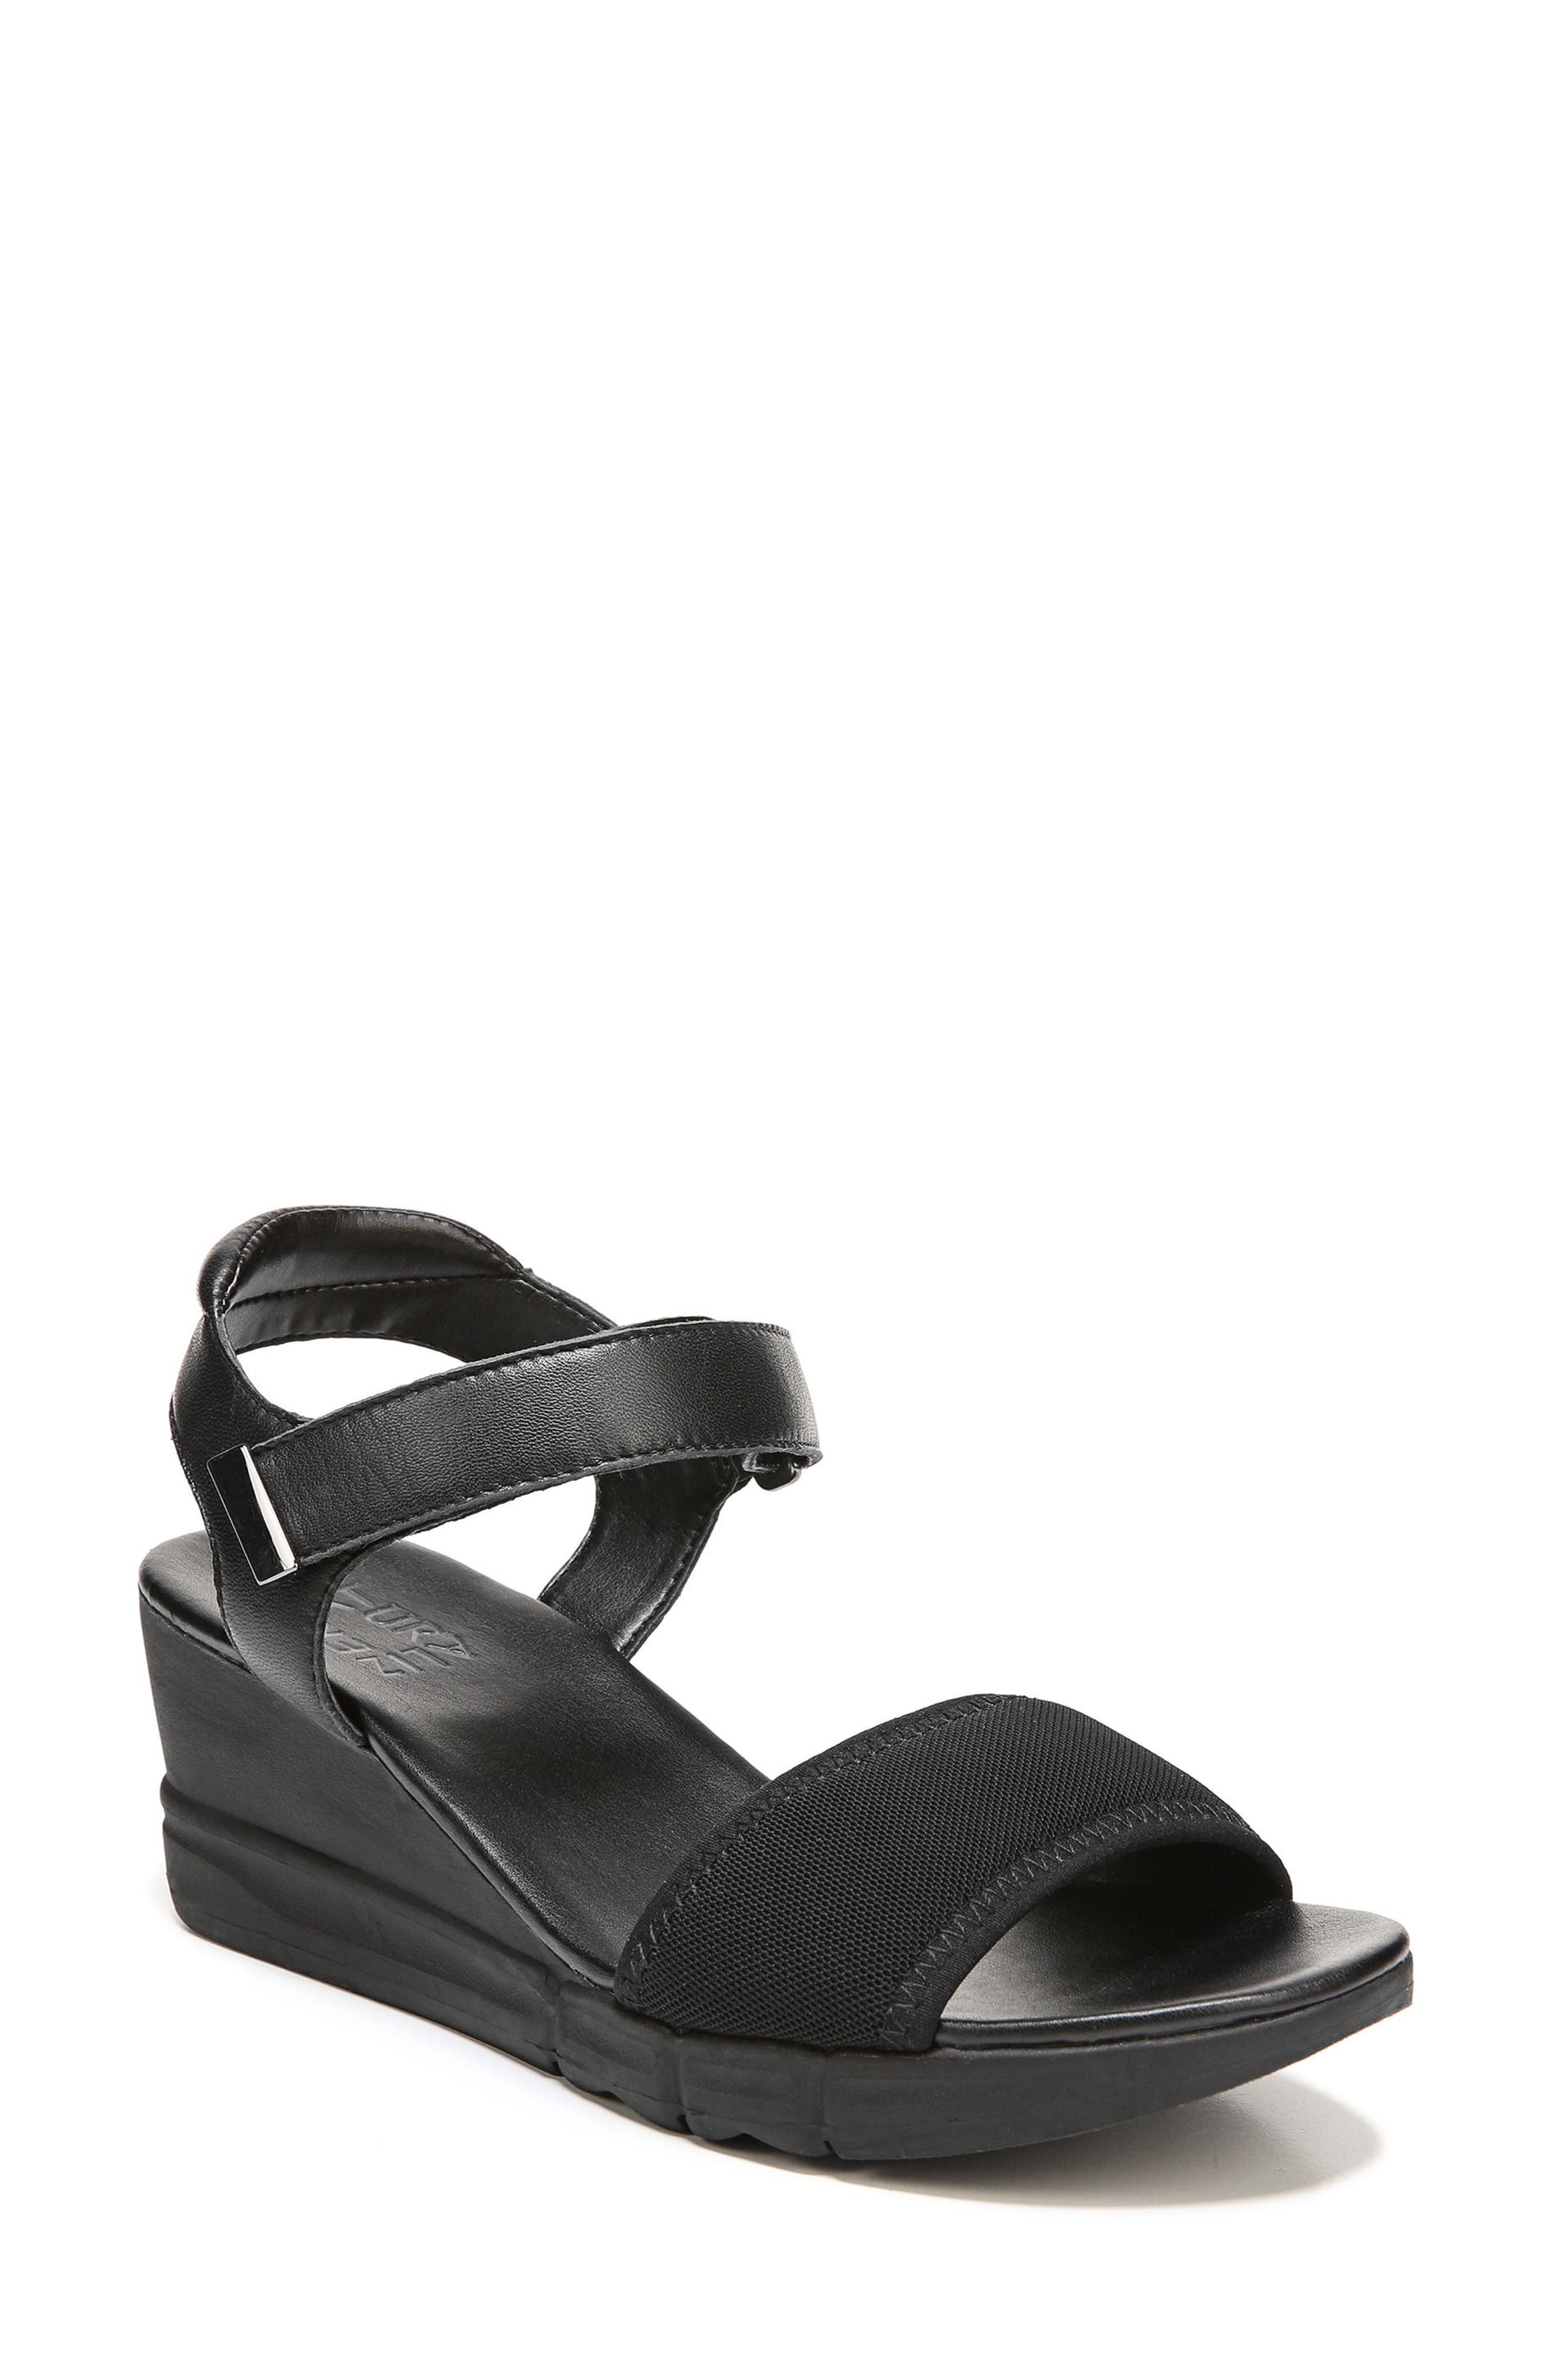 Irena Wedge Sandal,                             Main thumbnail 1, color,                             Black Leather